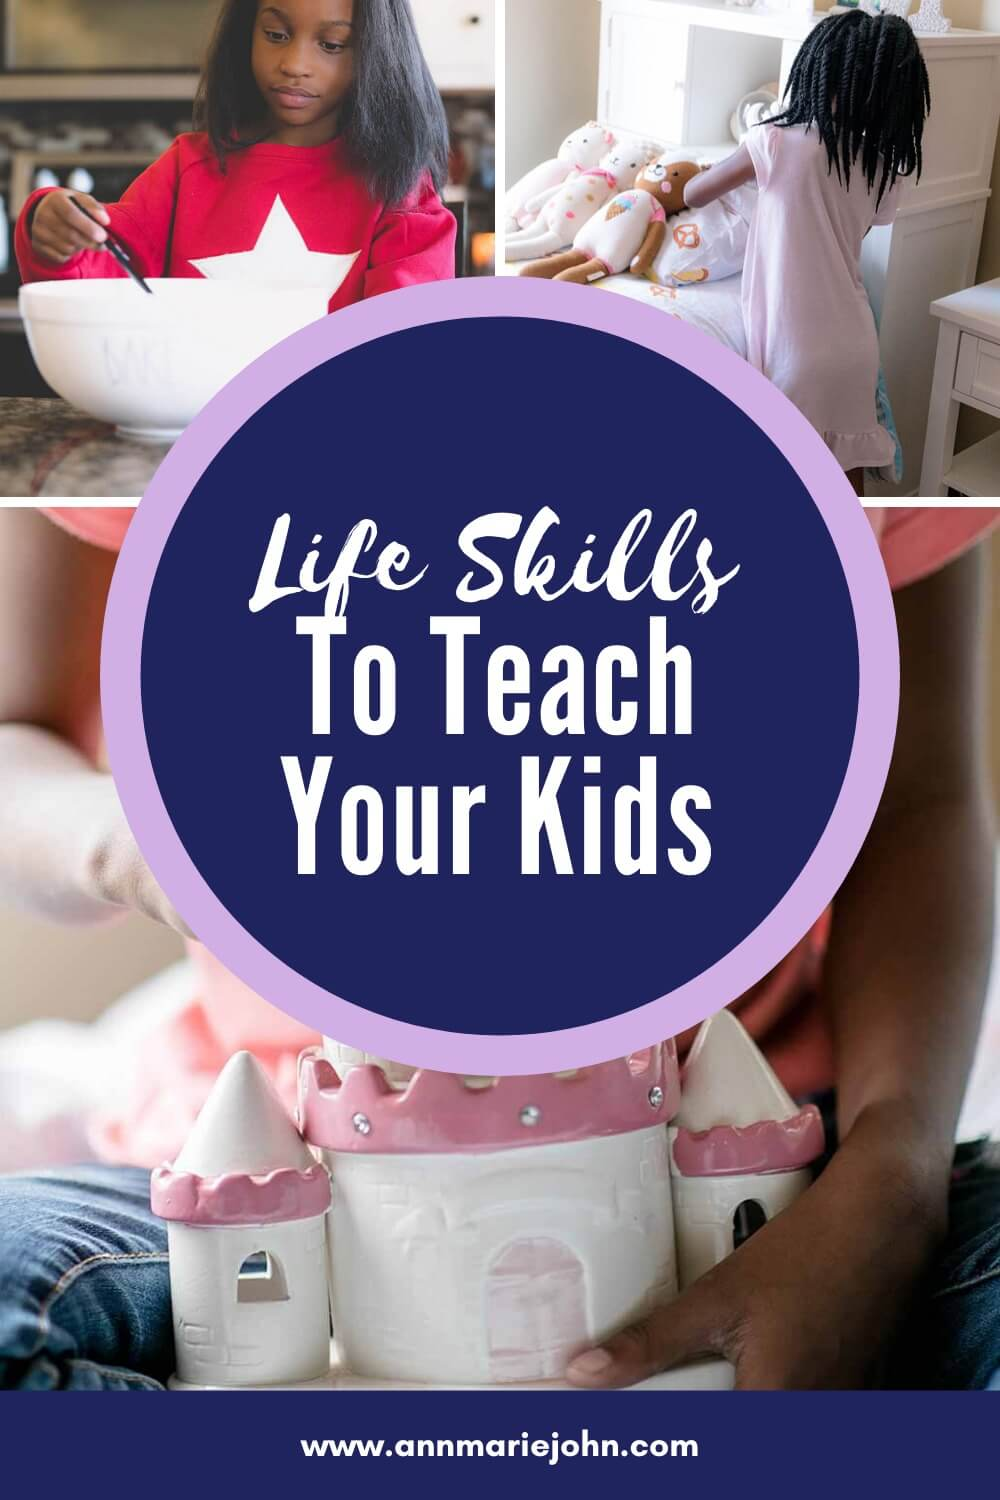 Life Skills to Teach Your Kids Pinterest Image